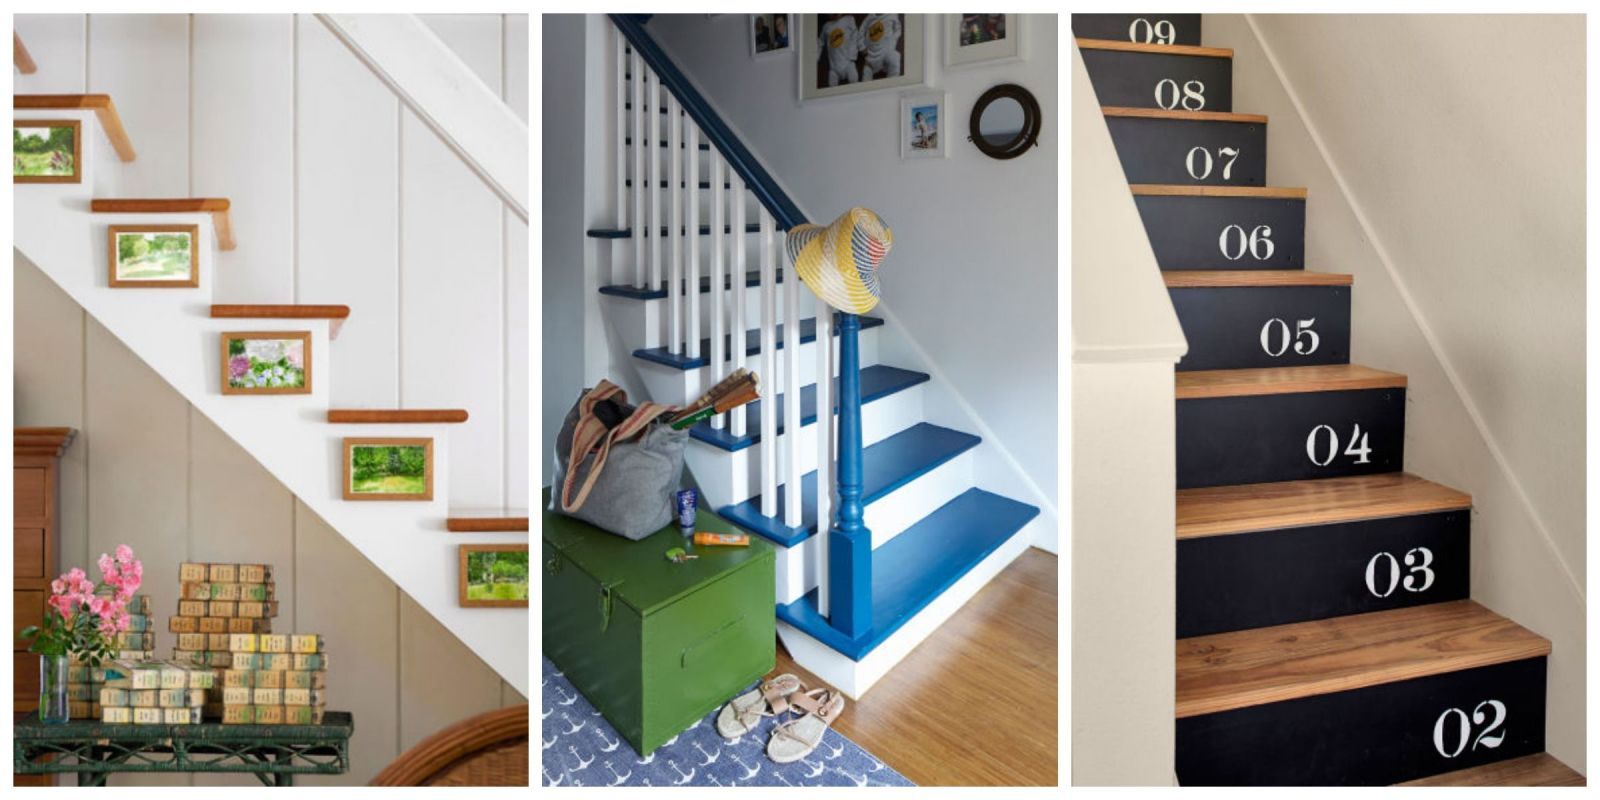 30+ Staircase Design Ideas - Beautiful Stairway Decorating Ideas